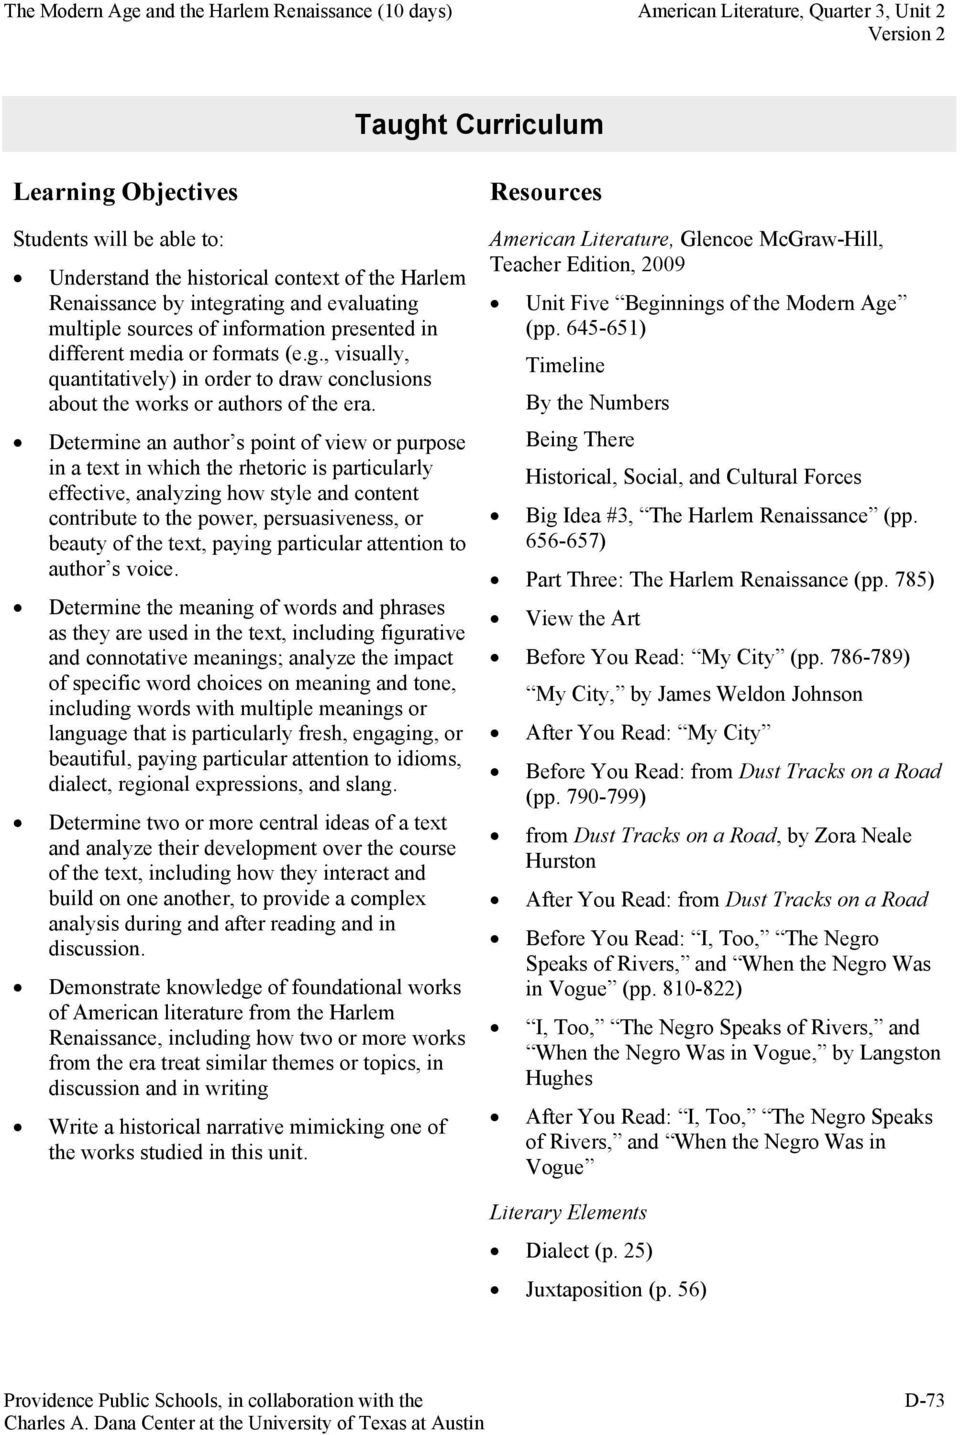 Harlem Renaissance Reading Comprehension Worksheets American Literature Quarter 3 Unit 2 Of 3 the Modern Age